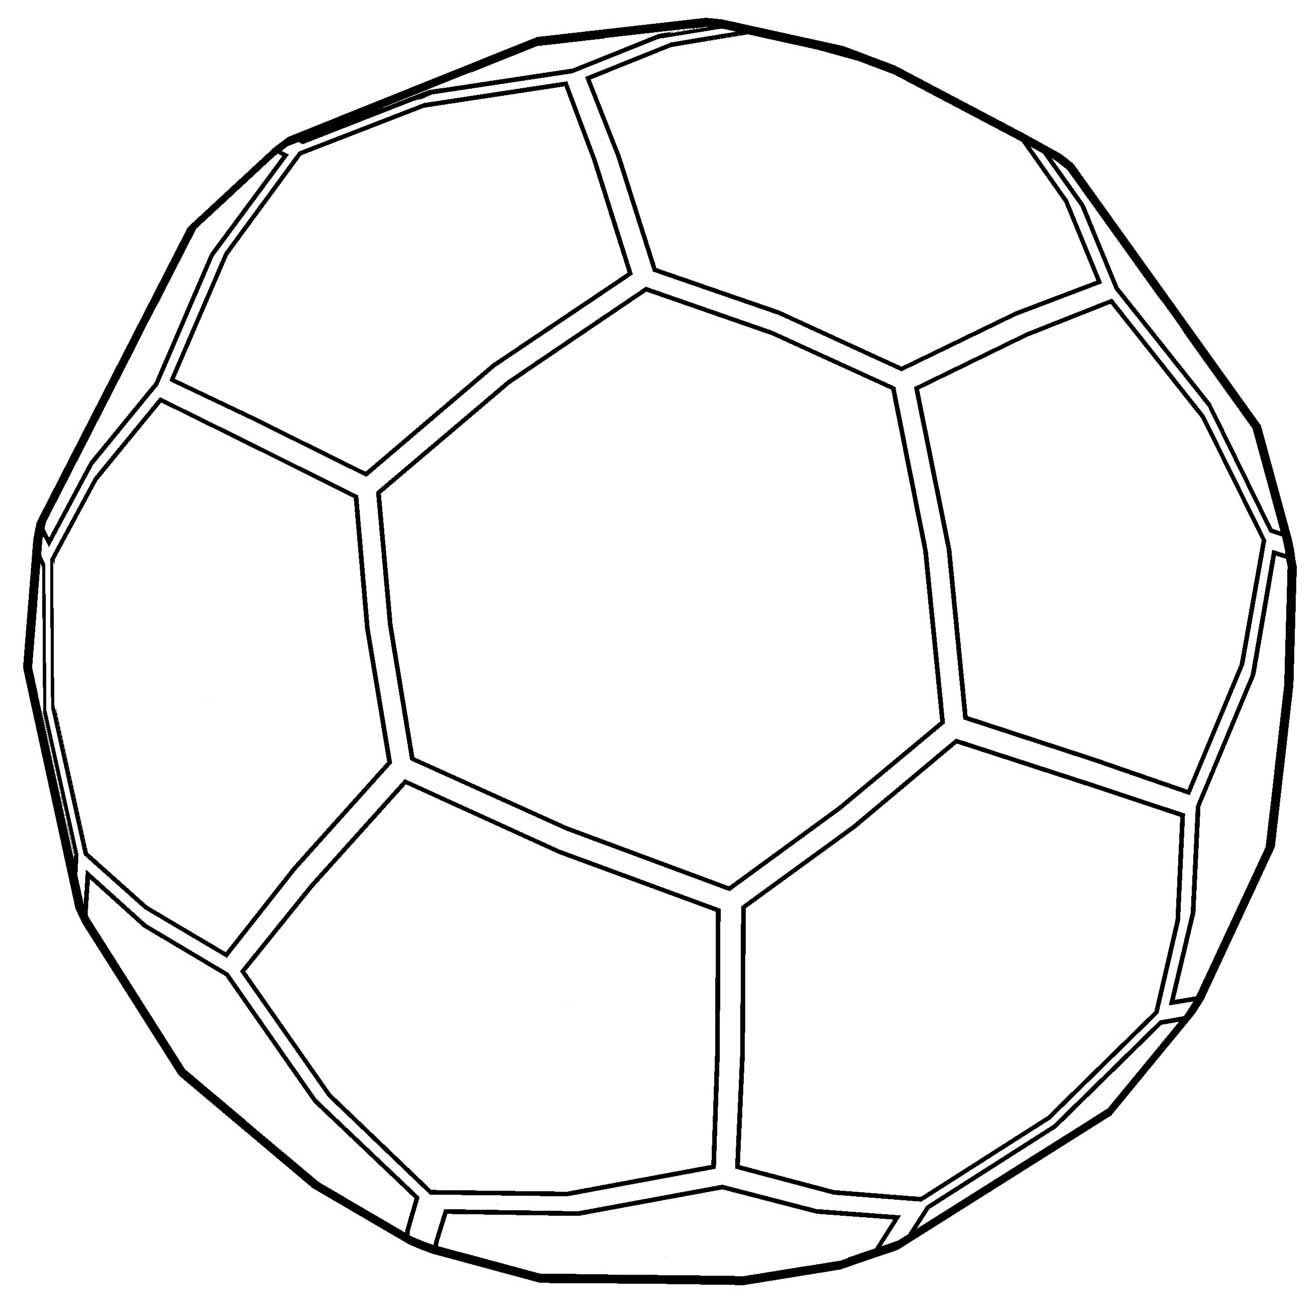 Cool Soccer Ball Outline Coloring Page Soccer Ball Sports Coloring Pages Football Coloring Pages